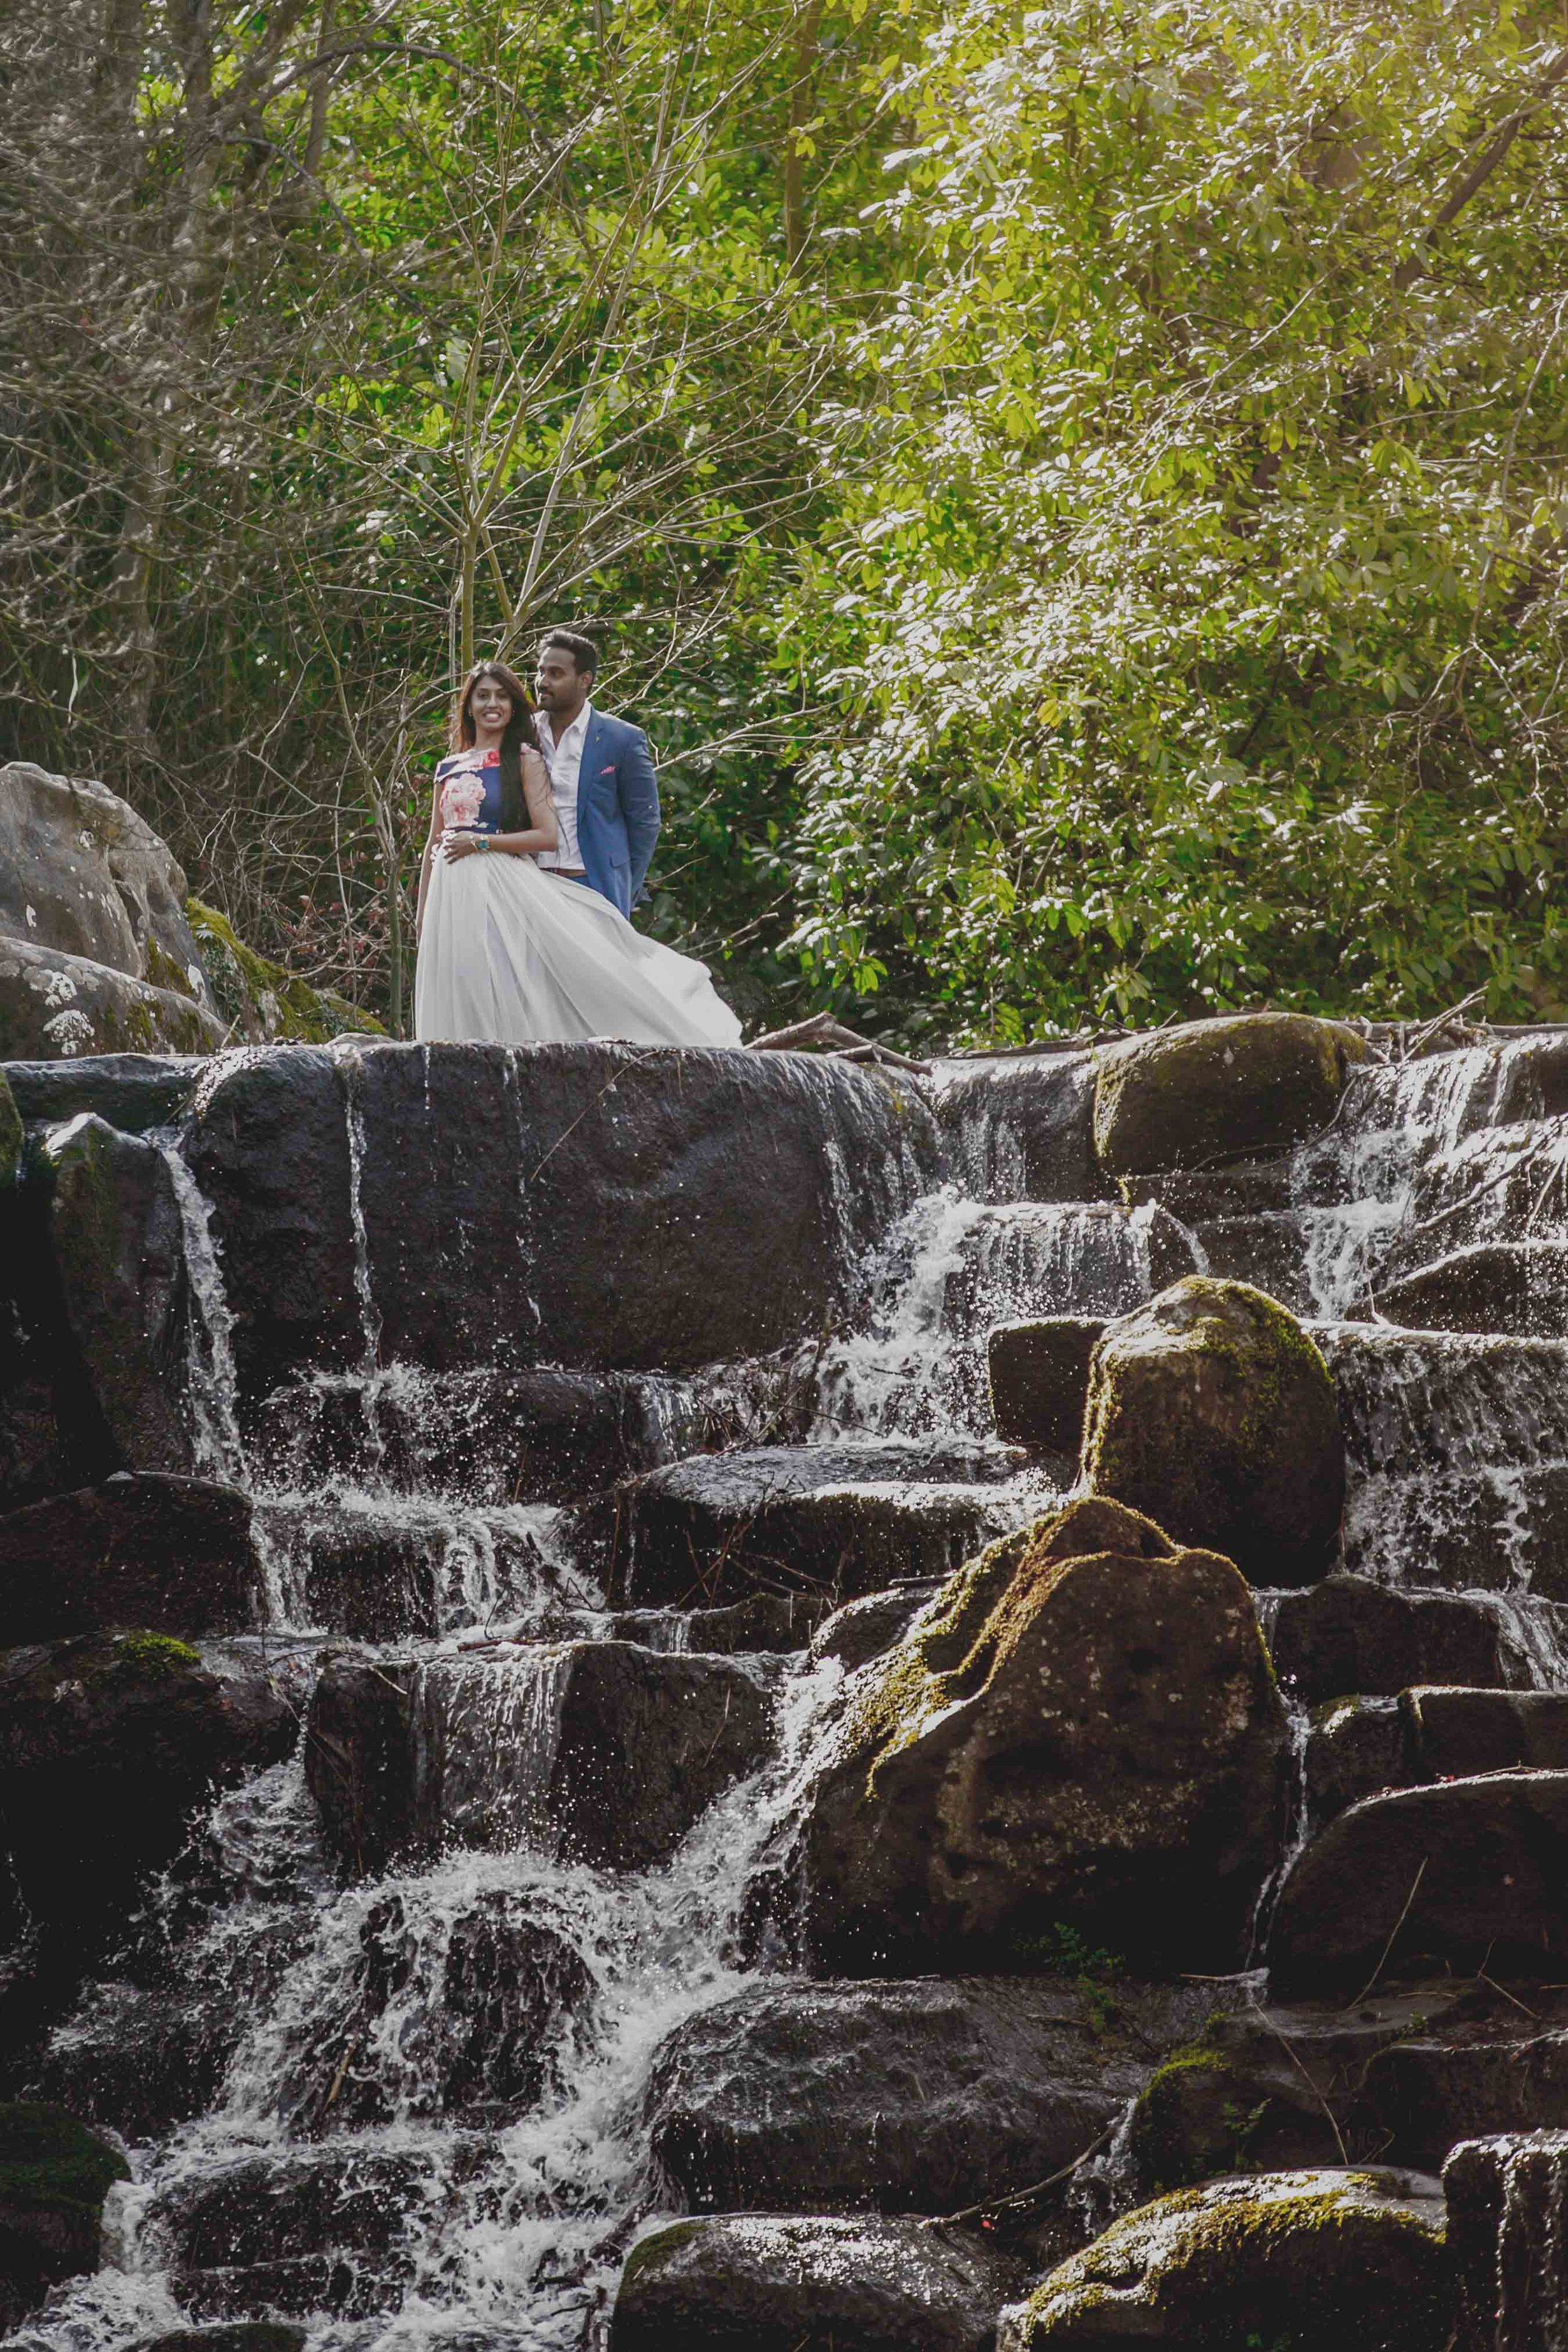 Virginia-waters-windsor-pre-wedding-waterfall-engagement-shoot-female-asian-wedding-photographer-natalia-smith-photography-8.jpg